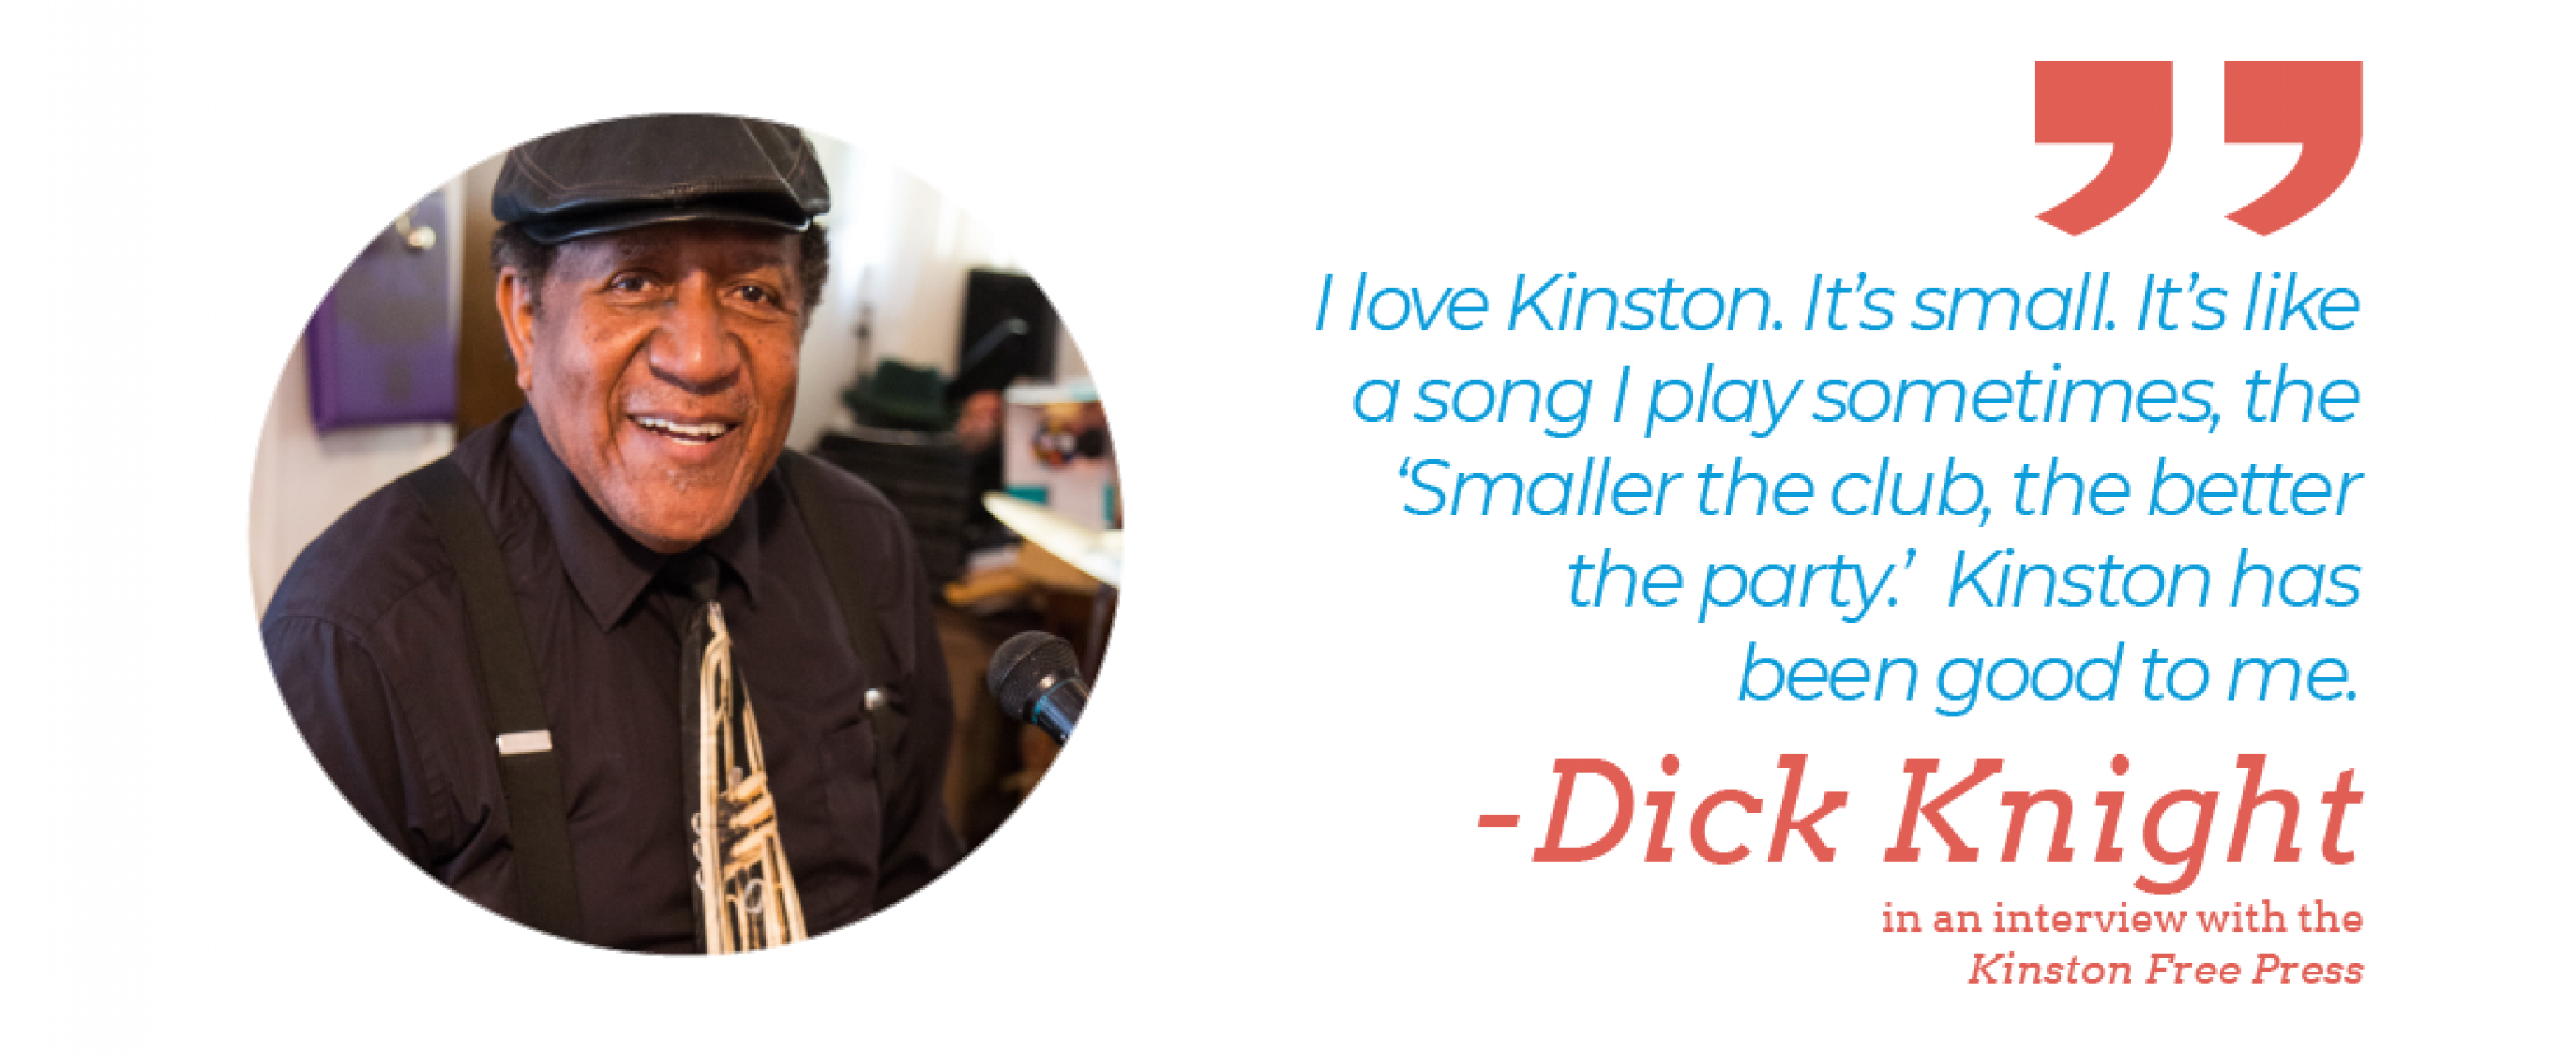 """I love Kinston. It's small. It's like a song I play sometimes, 'the Smaller the Club, the Better the Party'. Kinston has been good to me.""  — Dick Knight in an interview with the Kinston Free Press."""